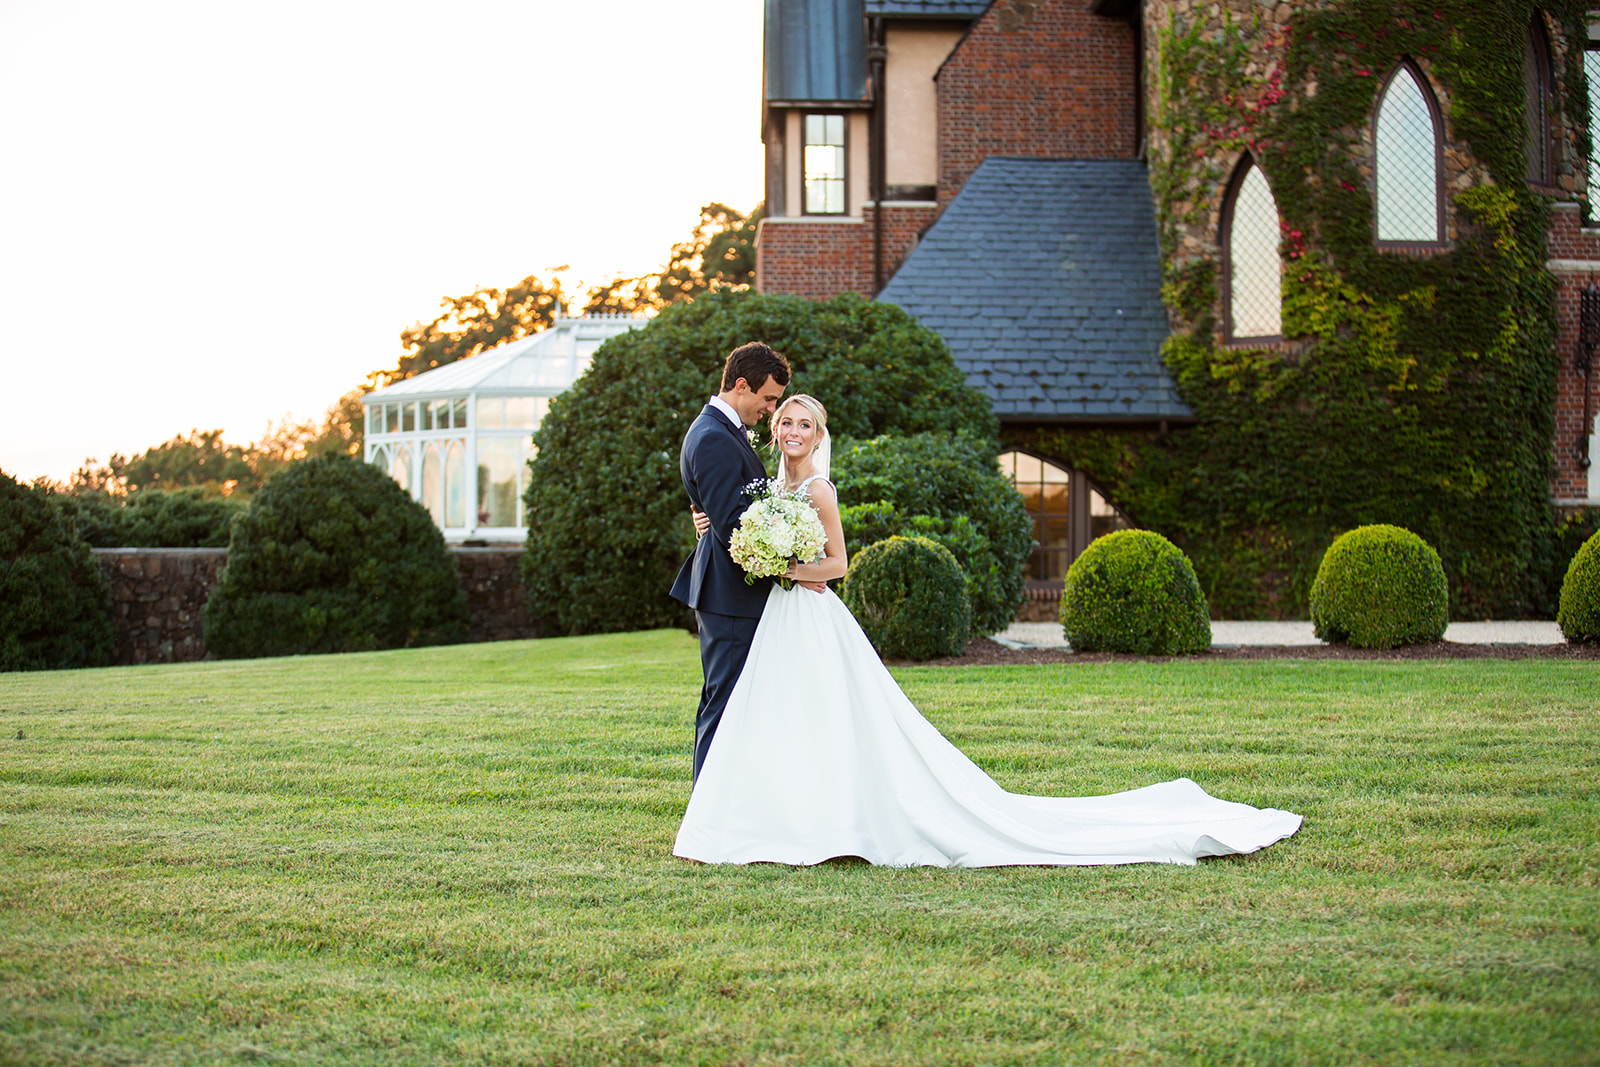 How Long Should You Book Your Wedding Photographer For - Image Property of www.j-dphoto.com